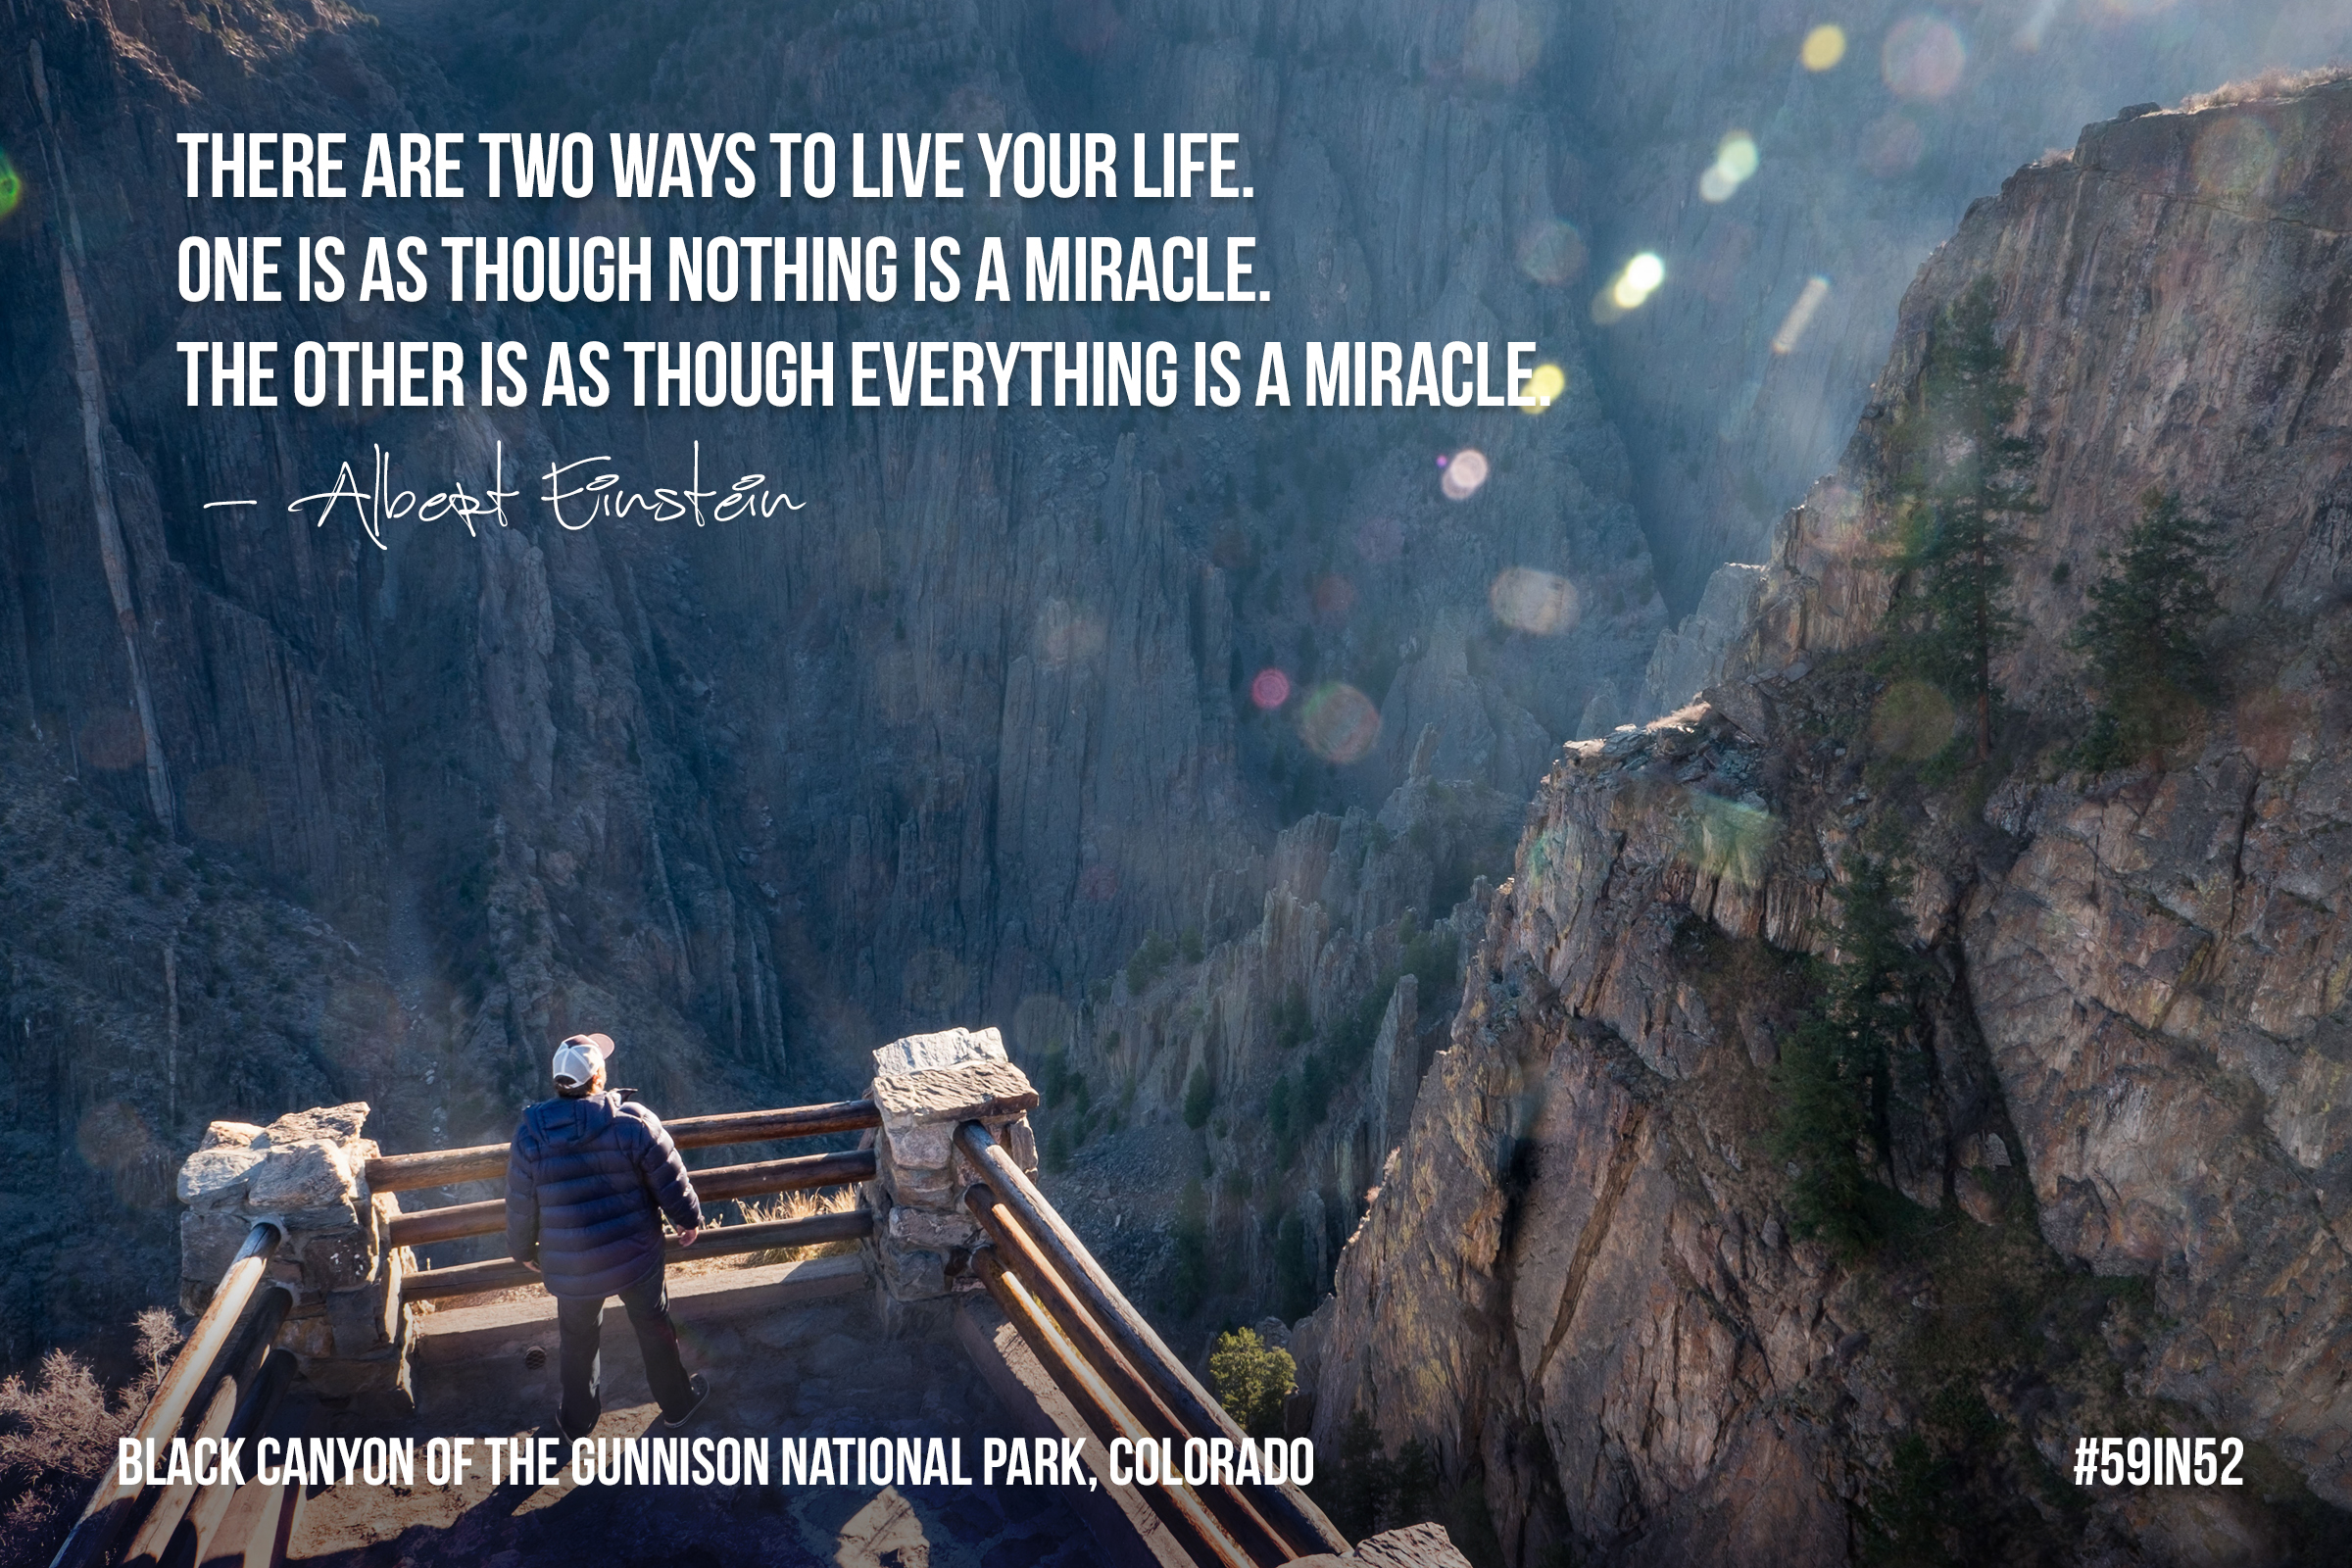 """There are only two ways to live your life. One is as though nothing is a miracle. The other is as though everything is a miracle."""" - Albert Einstein"""